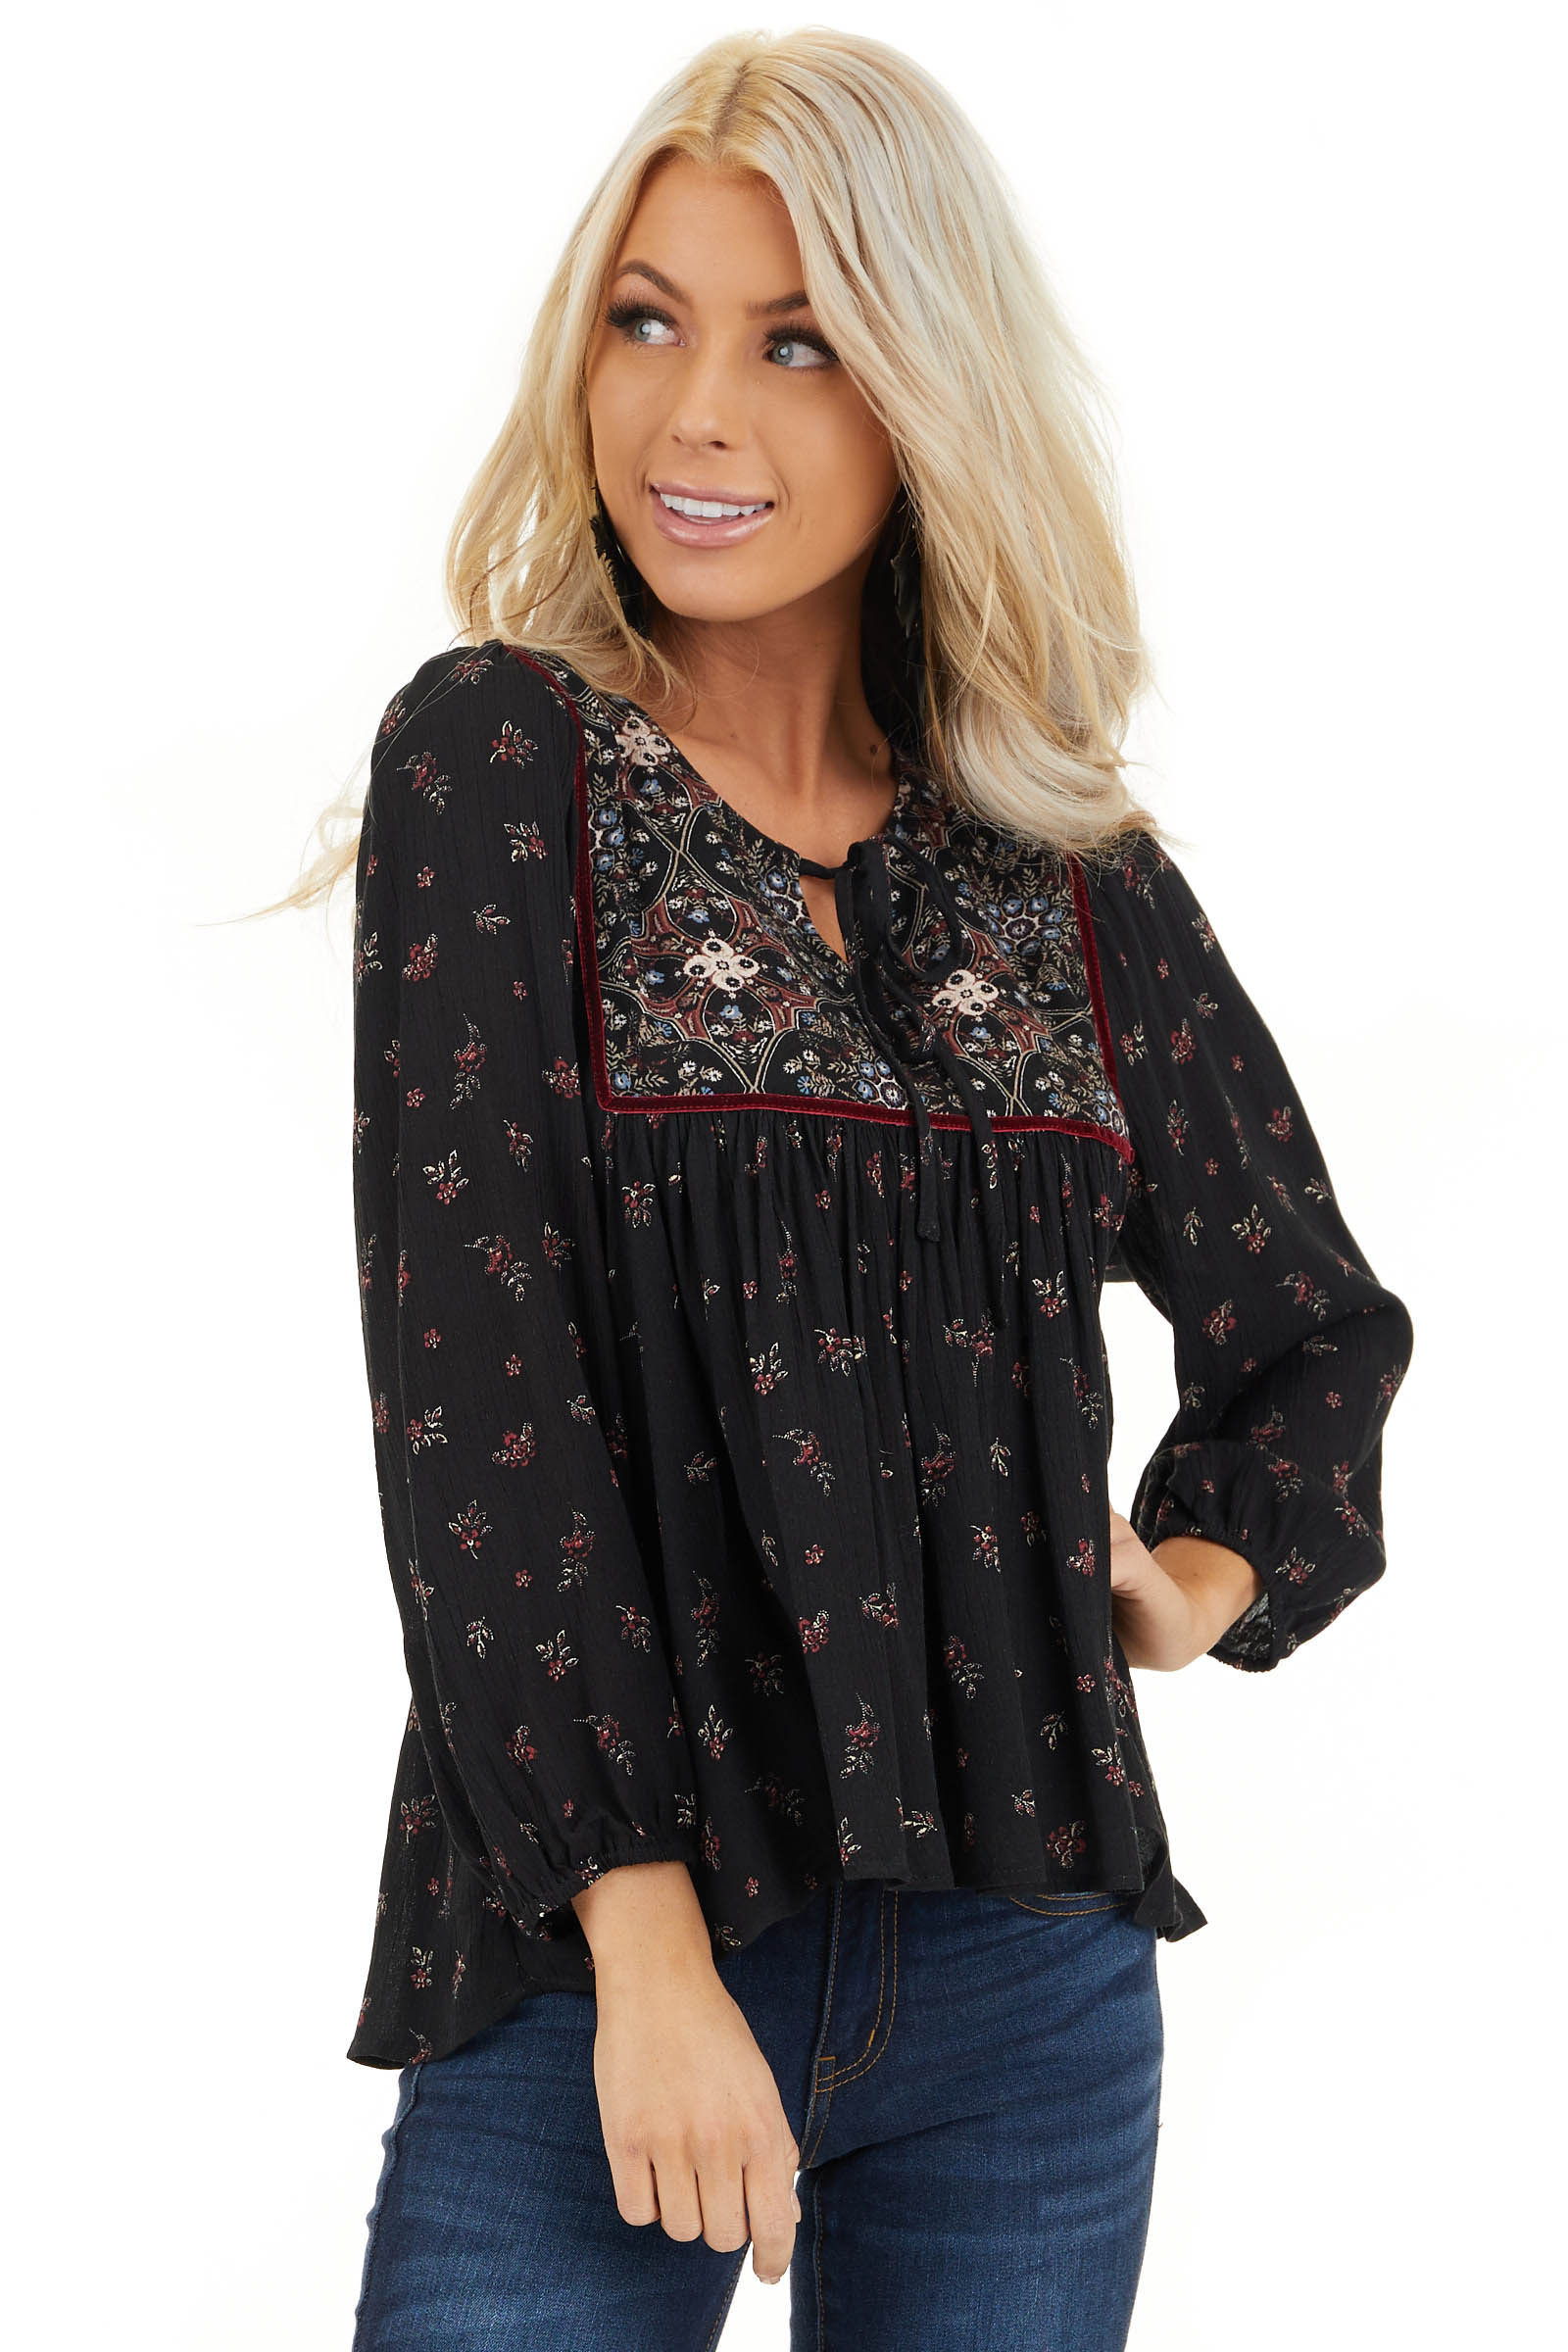 Onyx Black Floral Print 3/4 Sleeve Peasant Top with Tie front close up